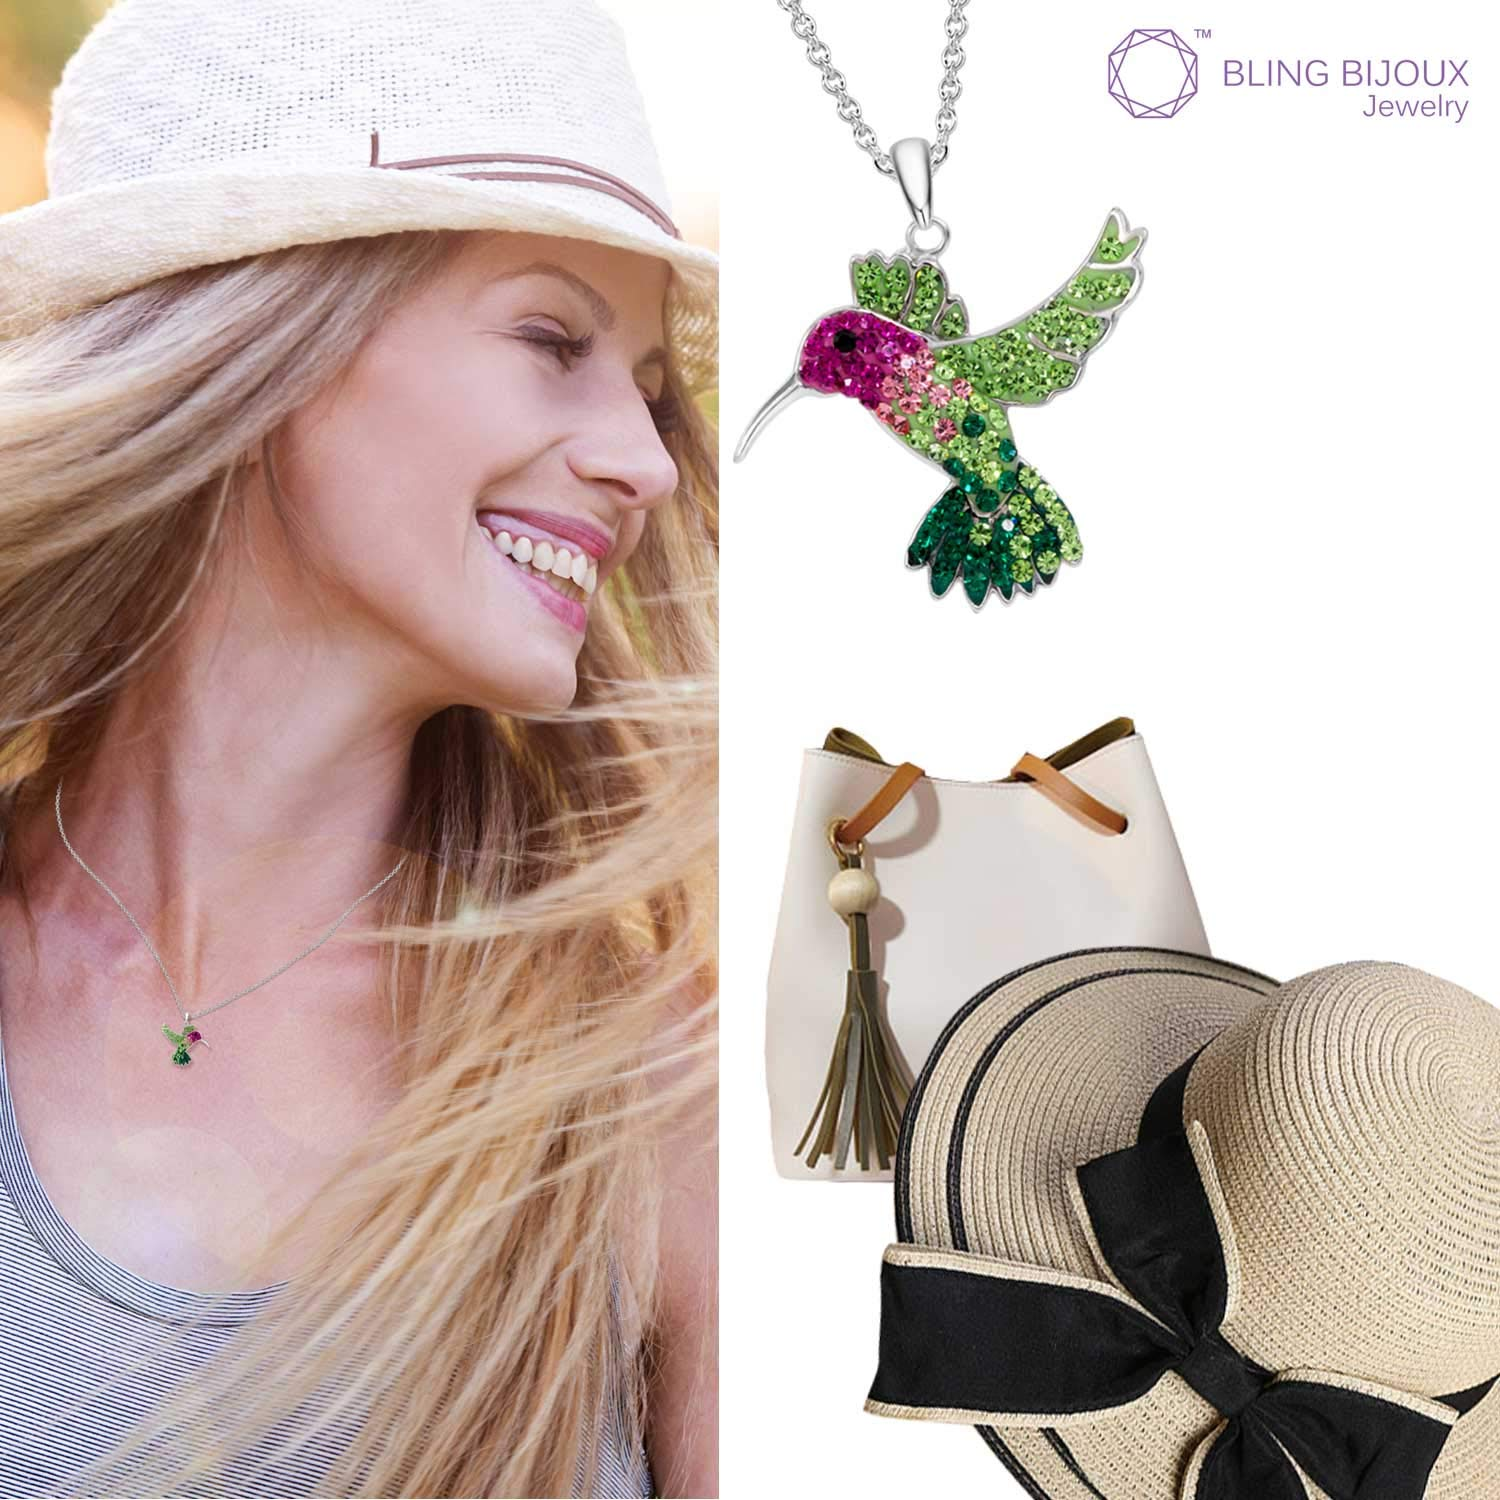 Colorful Flying Hummingbird Crystal Pendant Necklace Never Rust 925 Sterling Silver for Women, Girls & Teens, Natural & Hypoallergenic Chain with Free Breathtaking Gift Box for Special Moments of Love by BLING BIJOUX Jewelry (Image #5)